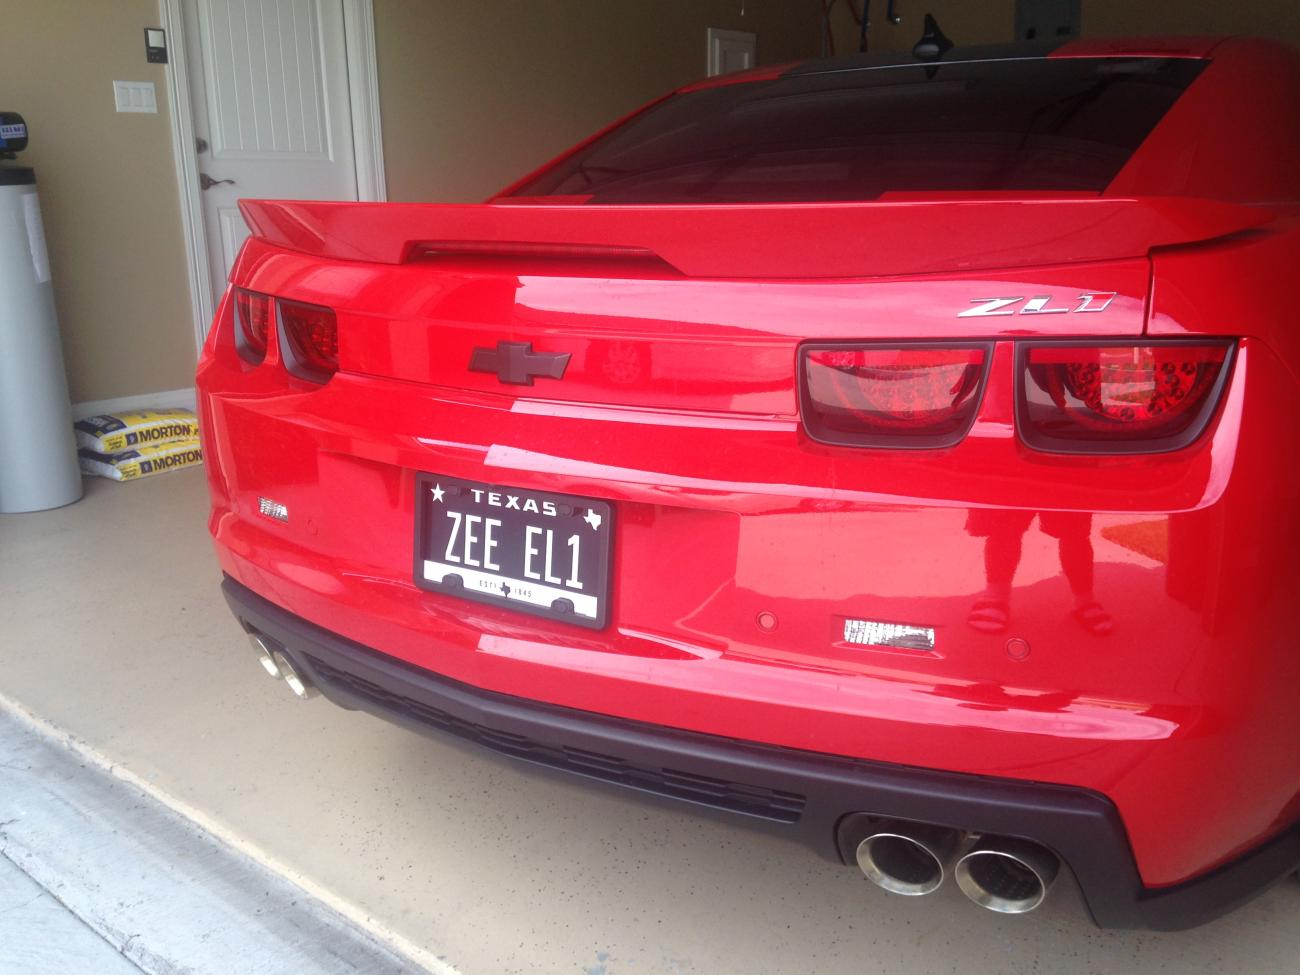 plasti dip projects Plasti dip international has been developing and manufacturing specialty coatings and adhesives since 1972 explore creative uses for plasti dip and share photos of your own automotive, handyman and crafty projects are you a diphead.